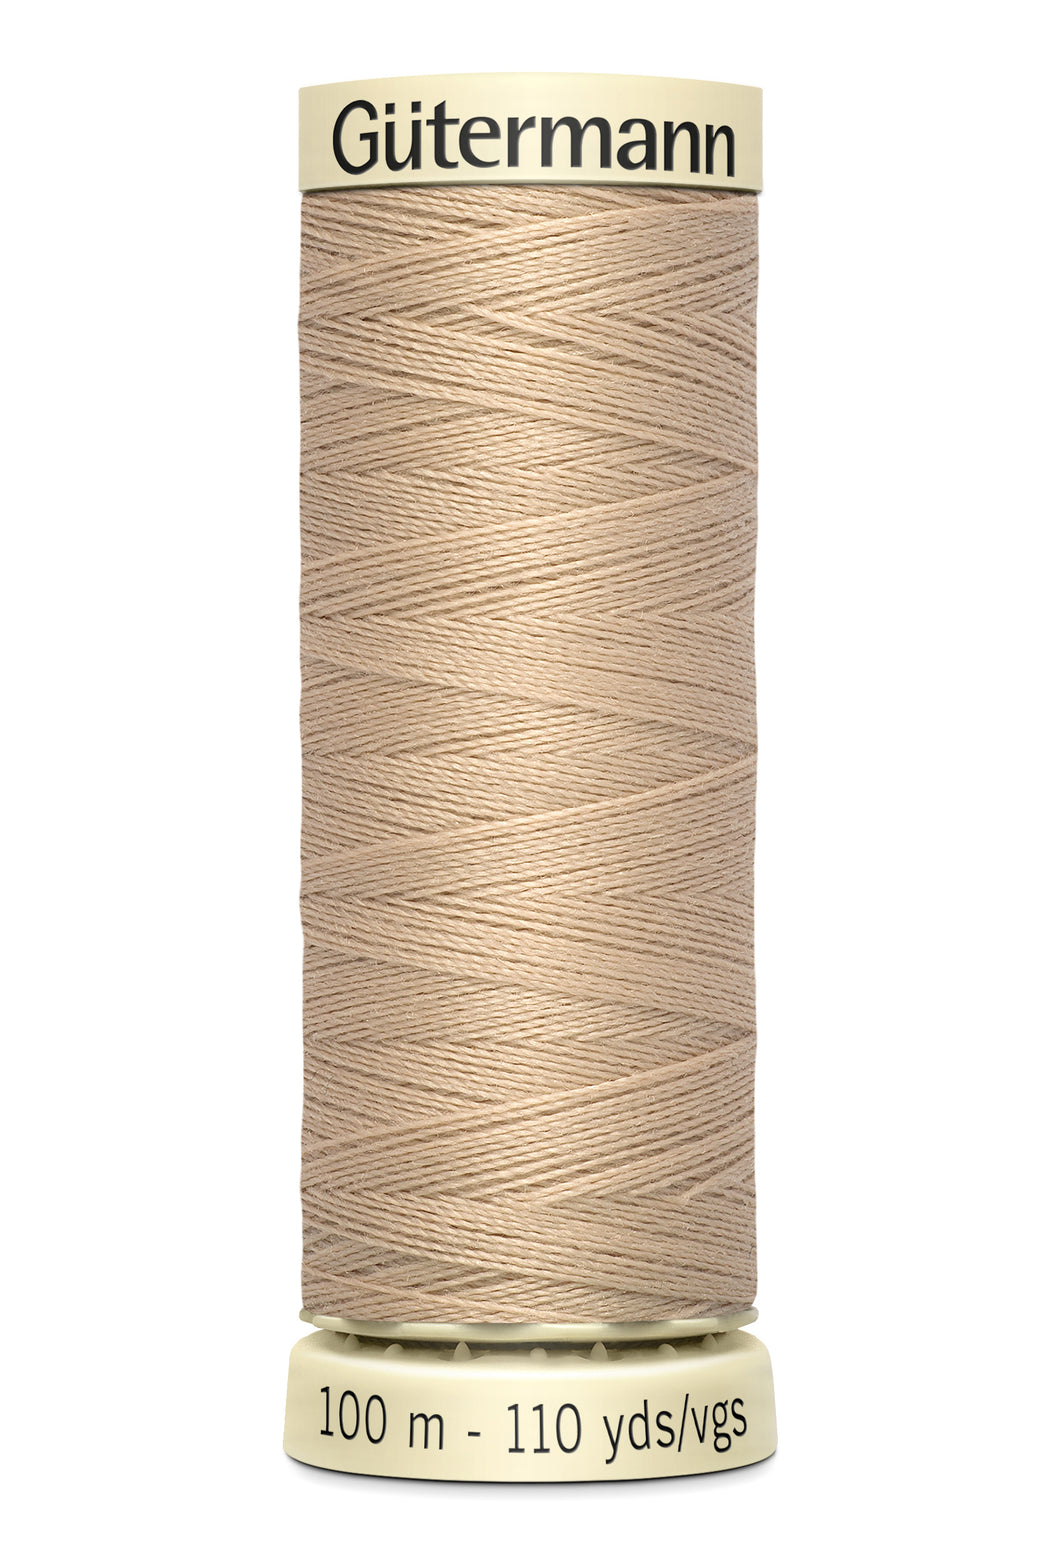 Gutermann Sew All Thread - Colour 186 Beige